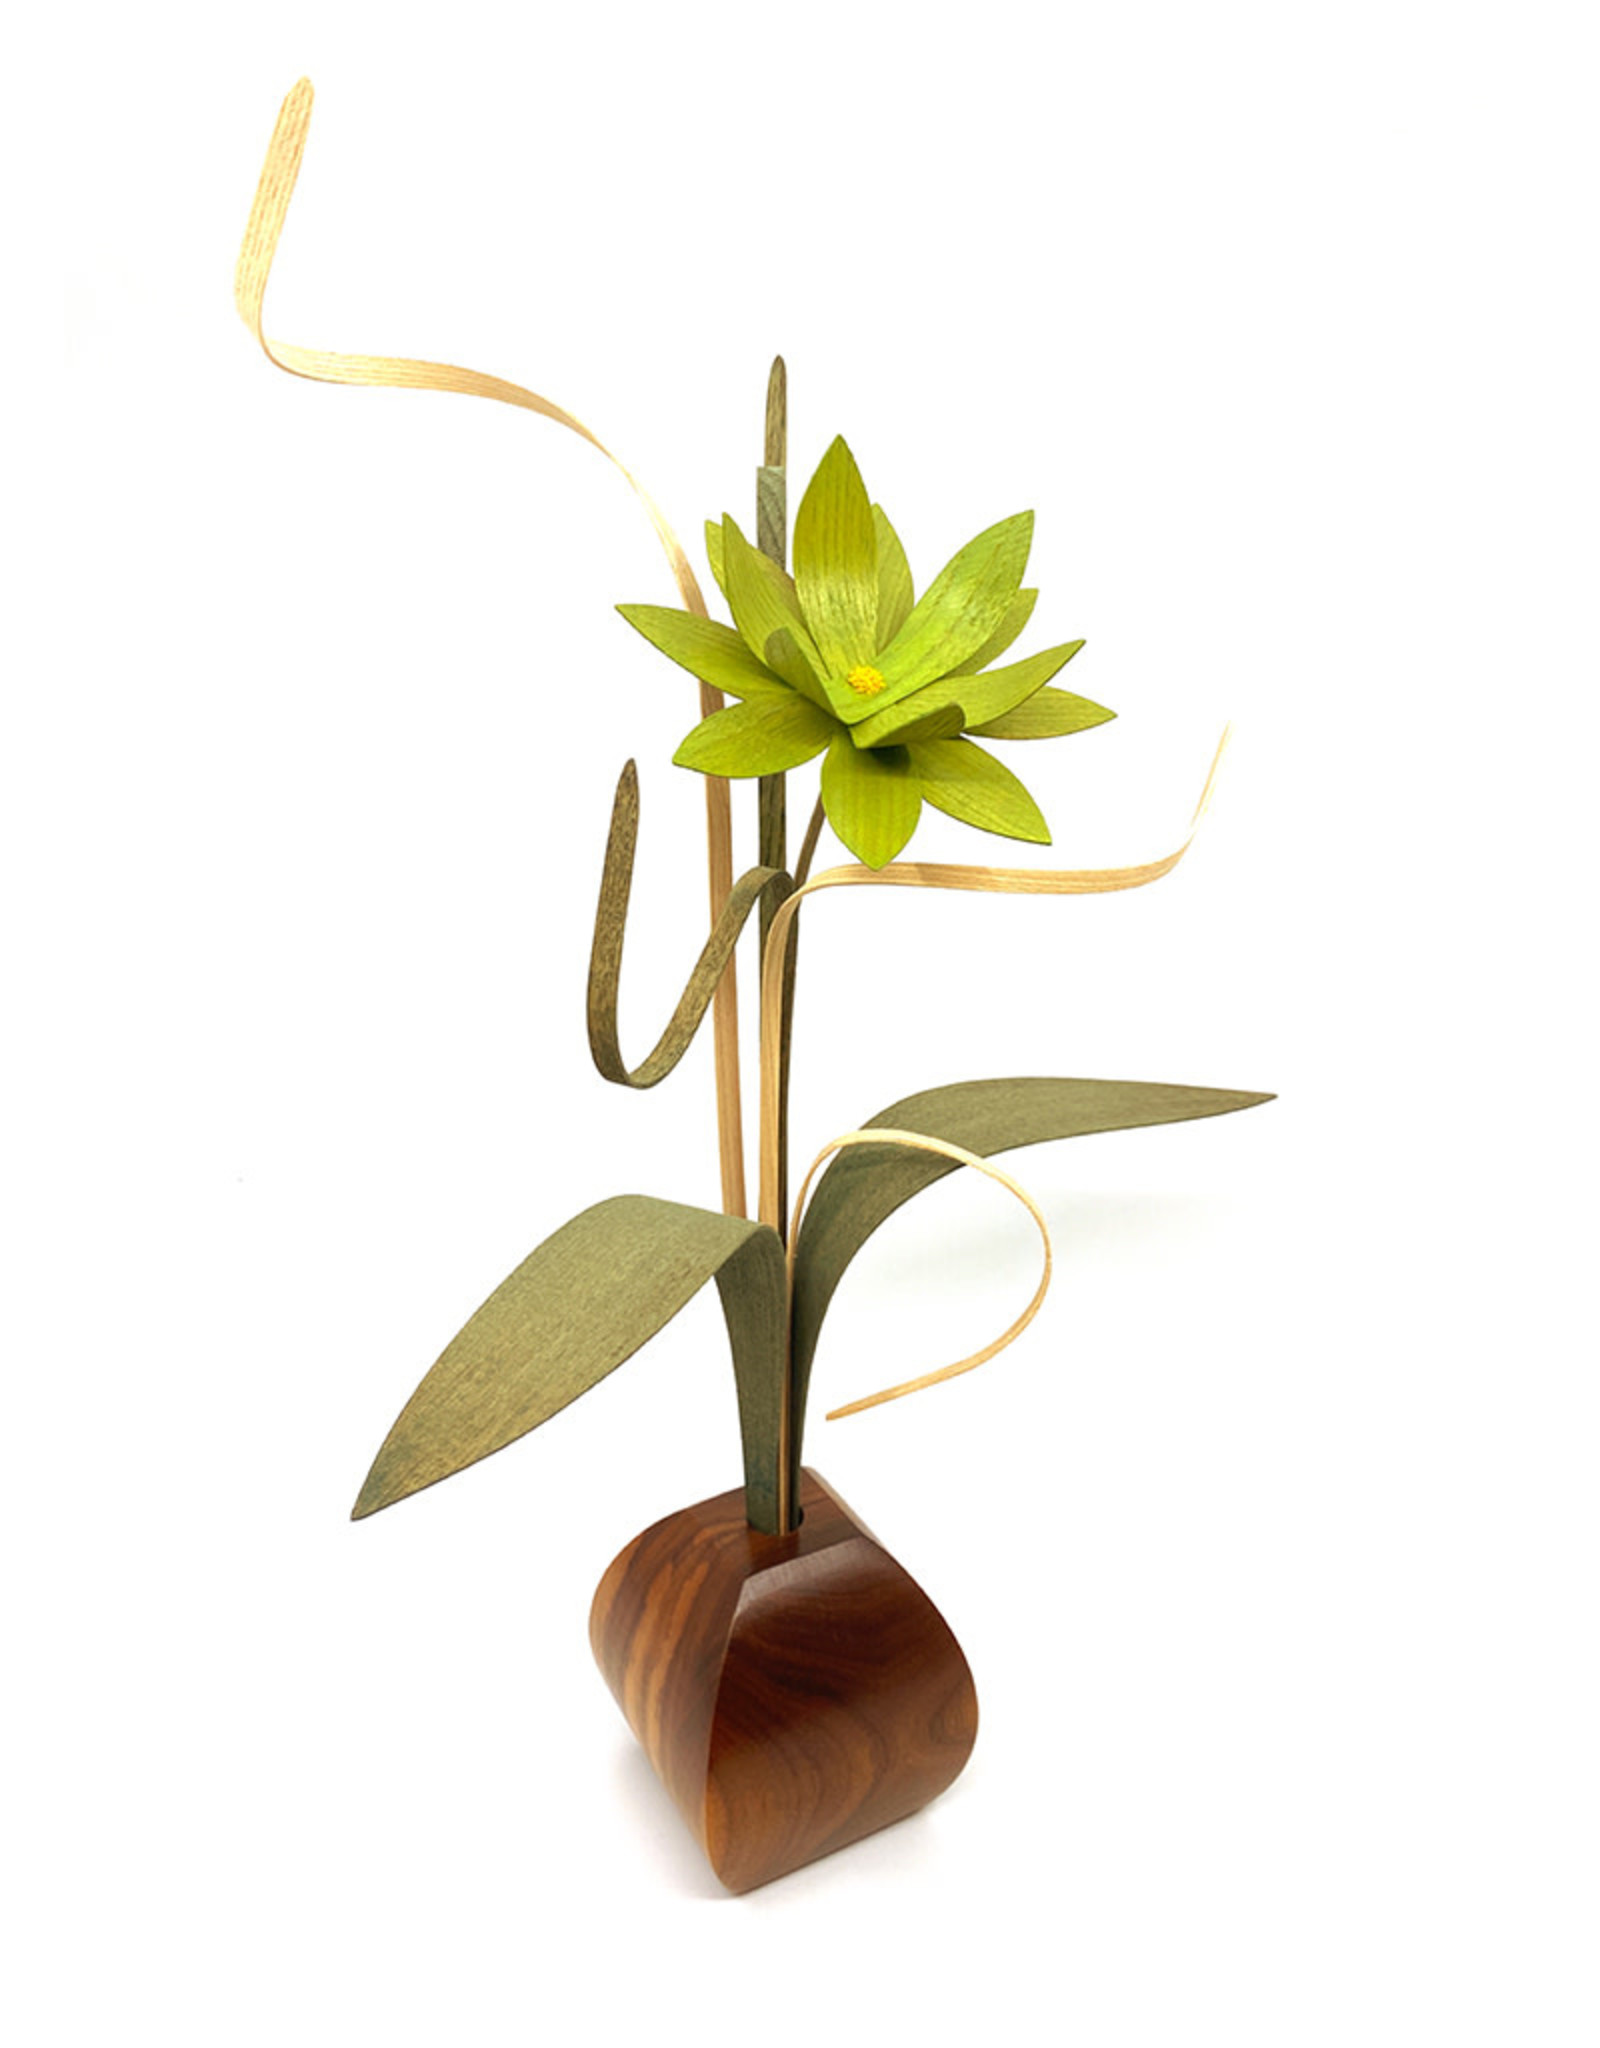 WOOD WILDFLOWERS EXPRESSIONS WOOD FLOWER ARRANGEMENT WITH 1 GREEN LOTUS